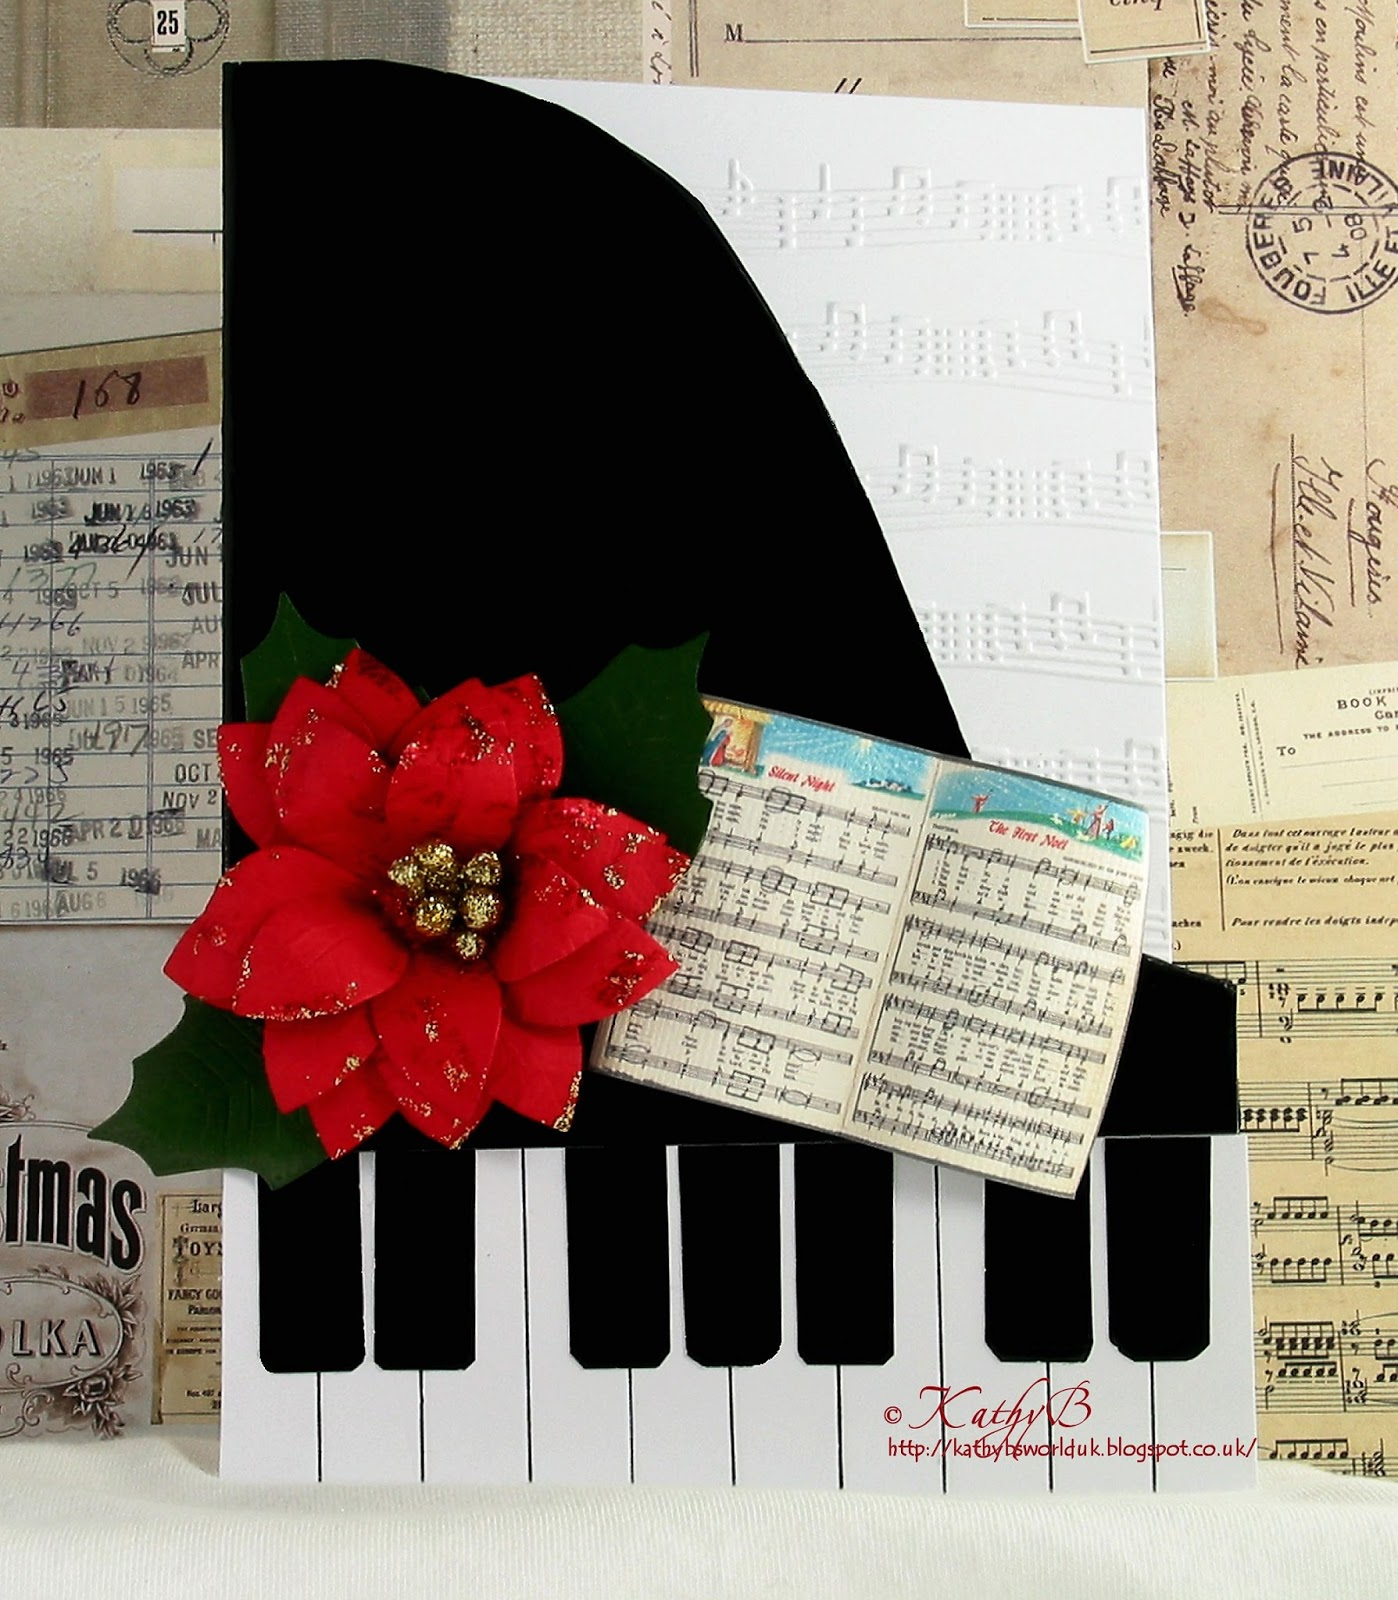 Be Our Guest Lyrics Sheet Music: Daring Cardmakers: Thank You For The Music